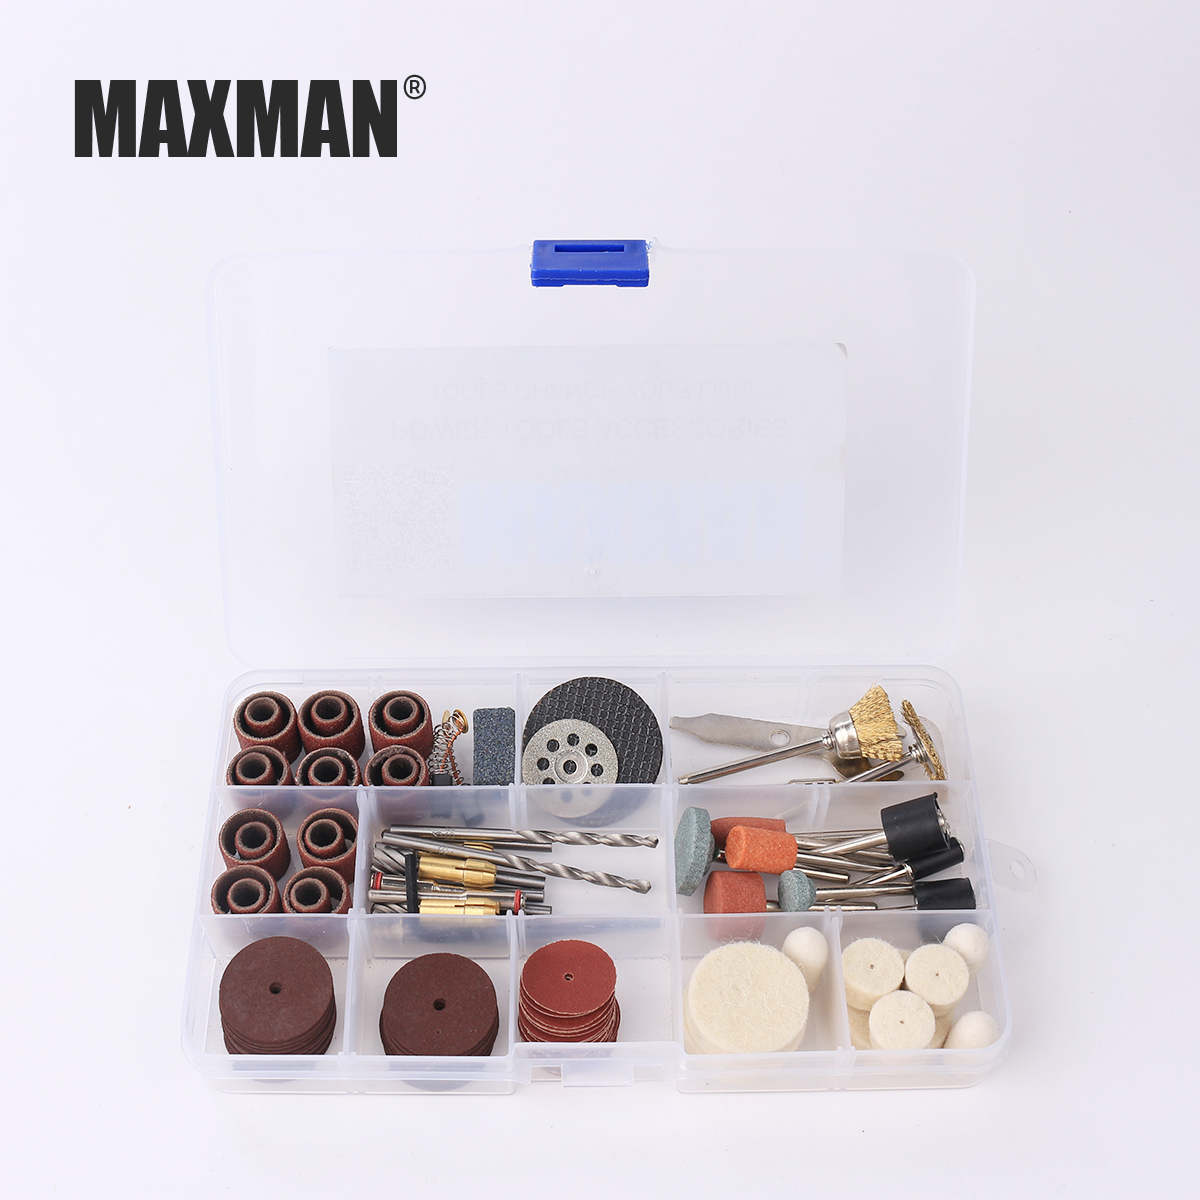 MAXMAN 256Pcs Wood Metal Engraving Electric Rotary Tool Accessories for Dremel Bit Set Grinding Polish Cutting Sheet